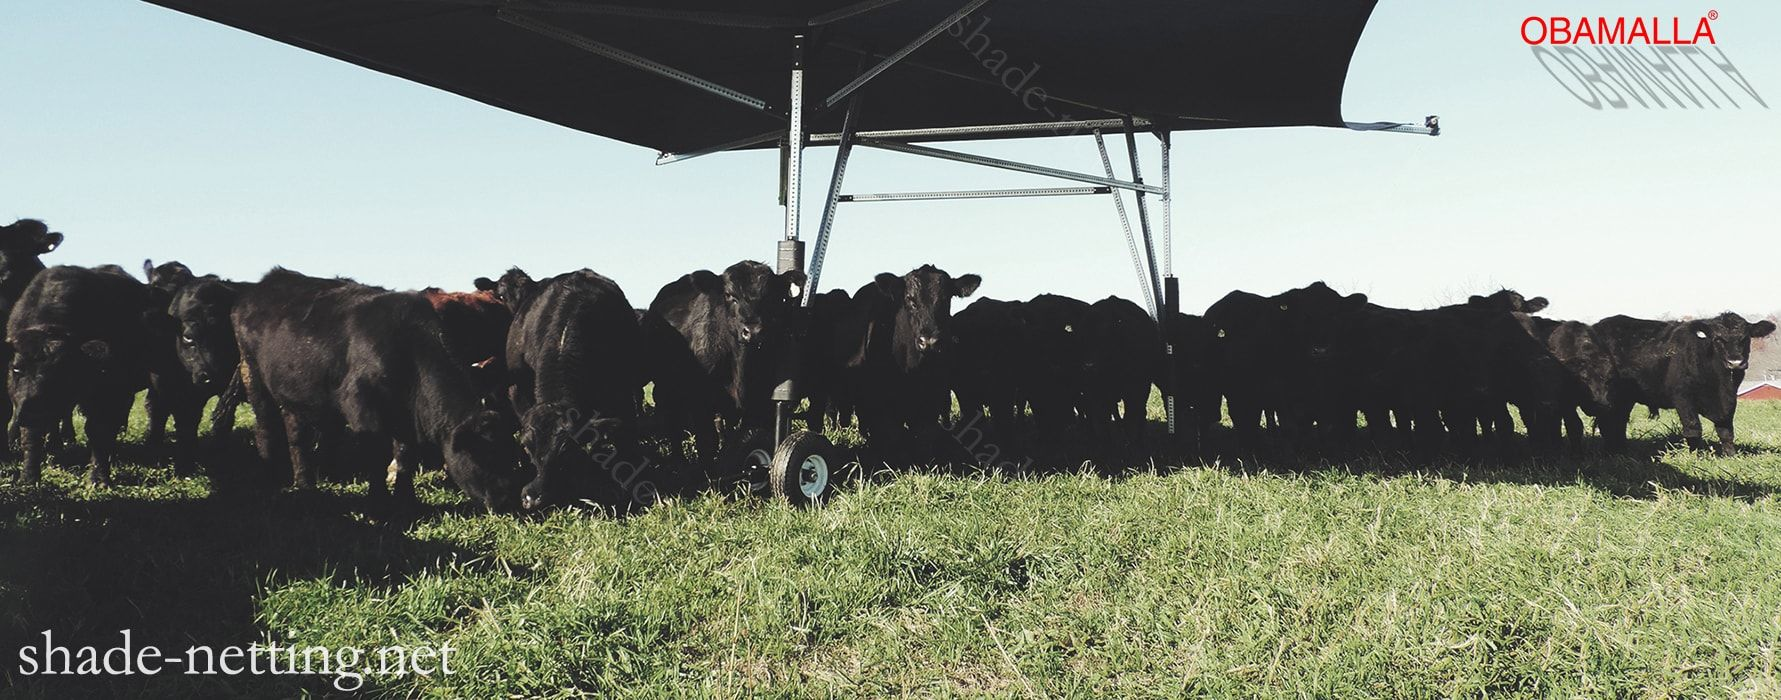 shade cloth obamalla portecting the cattle of the high temperatures.